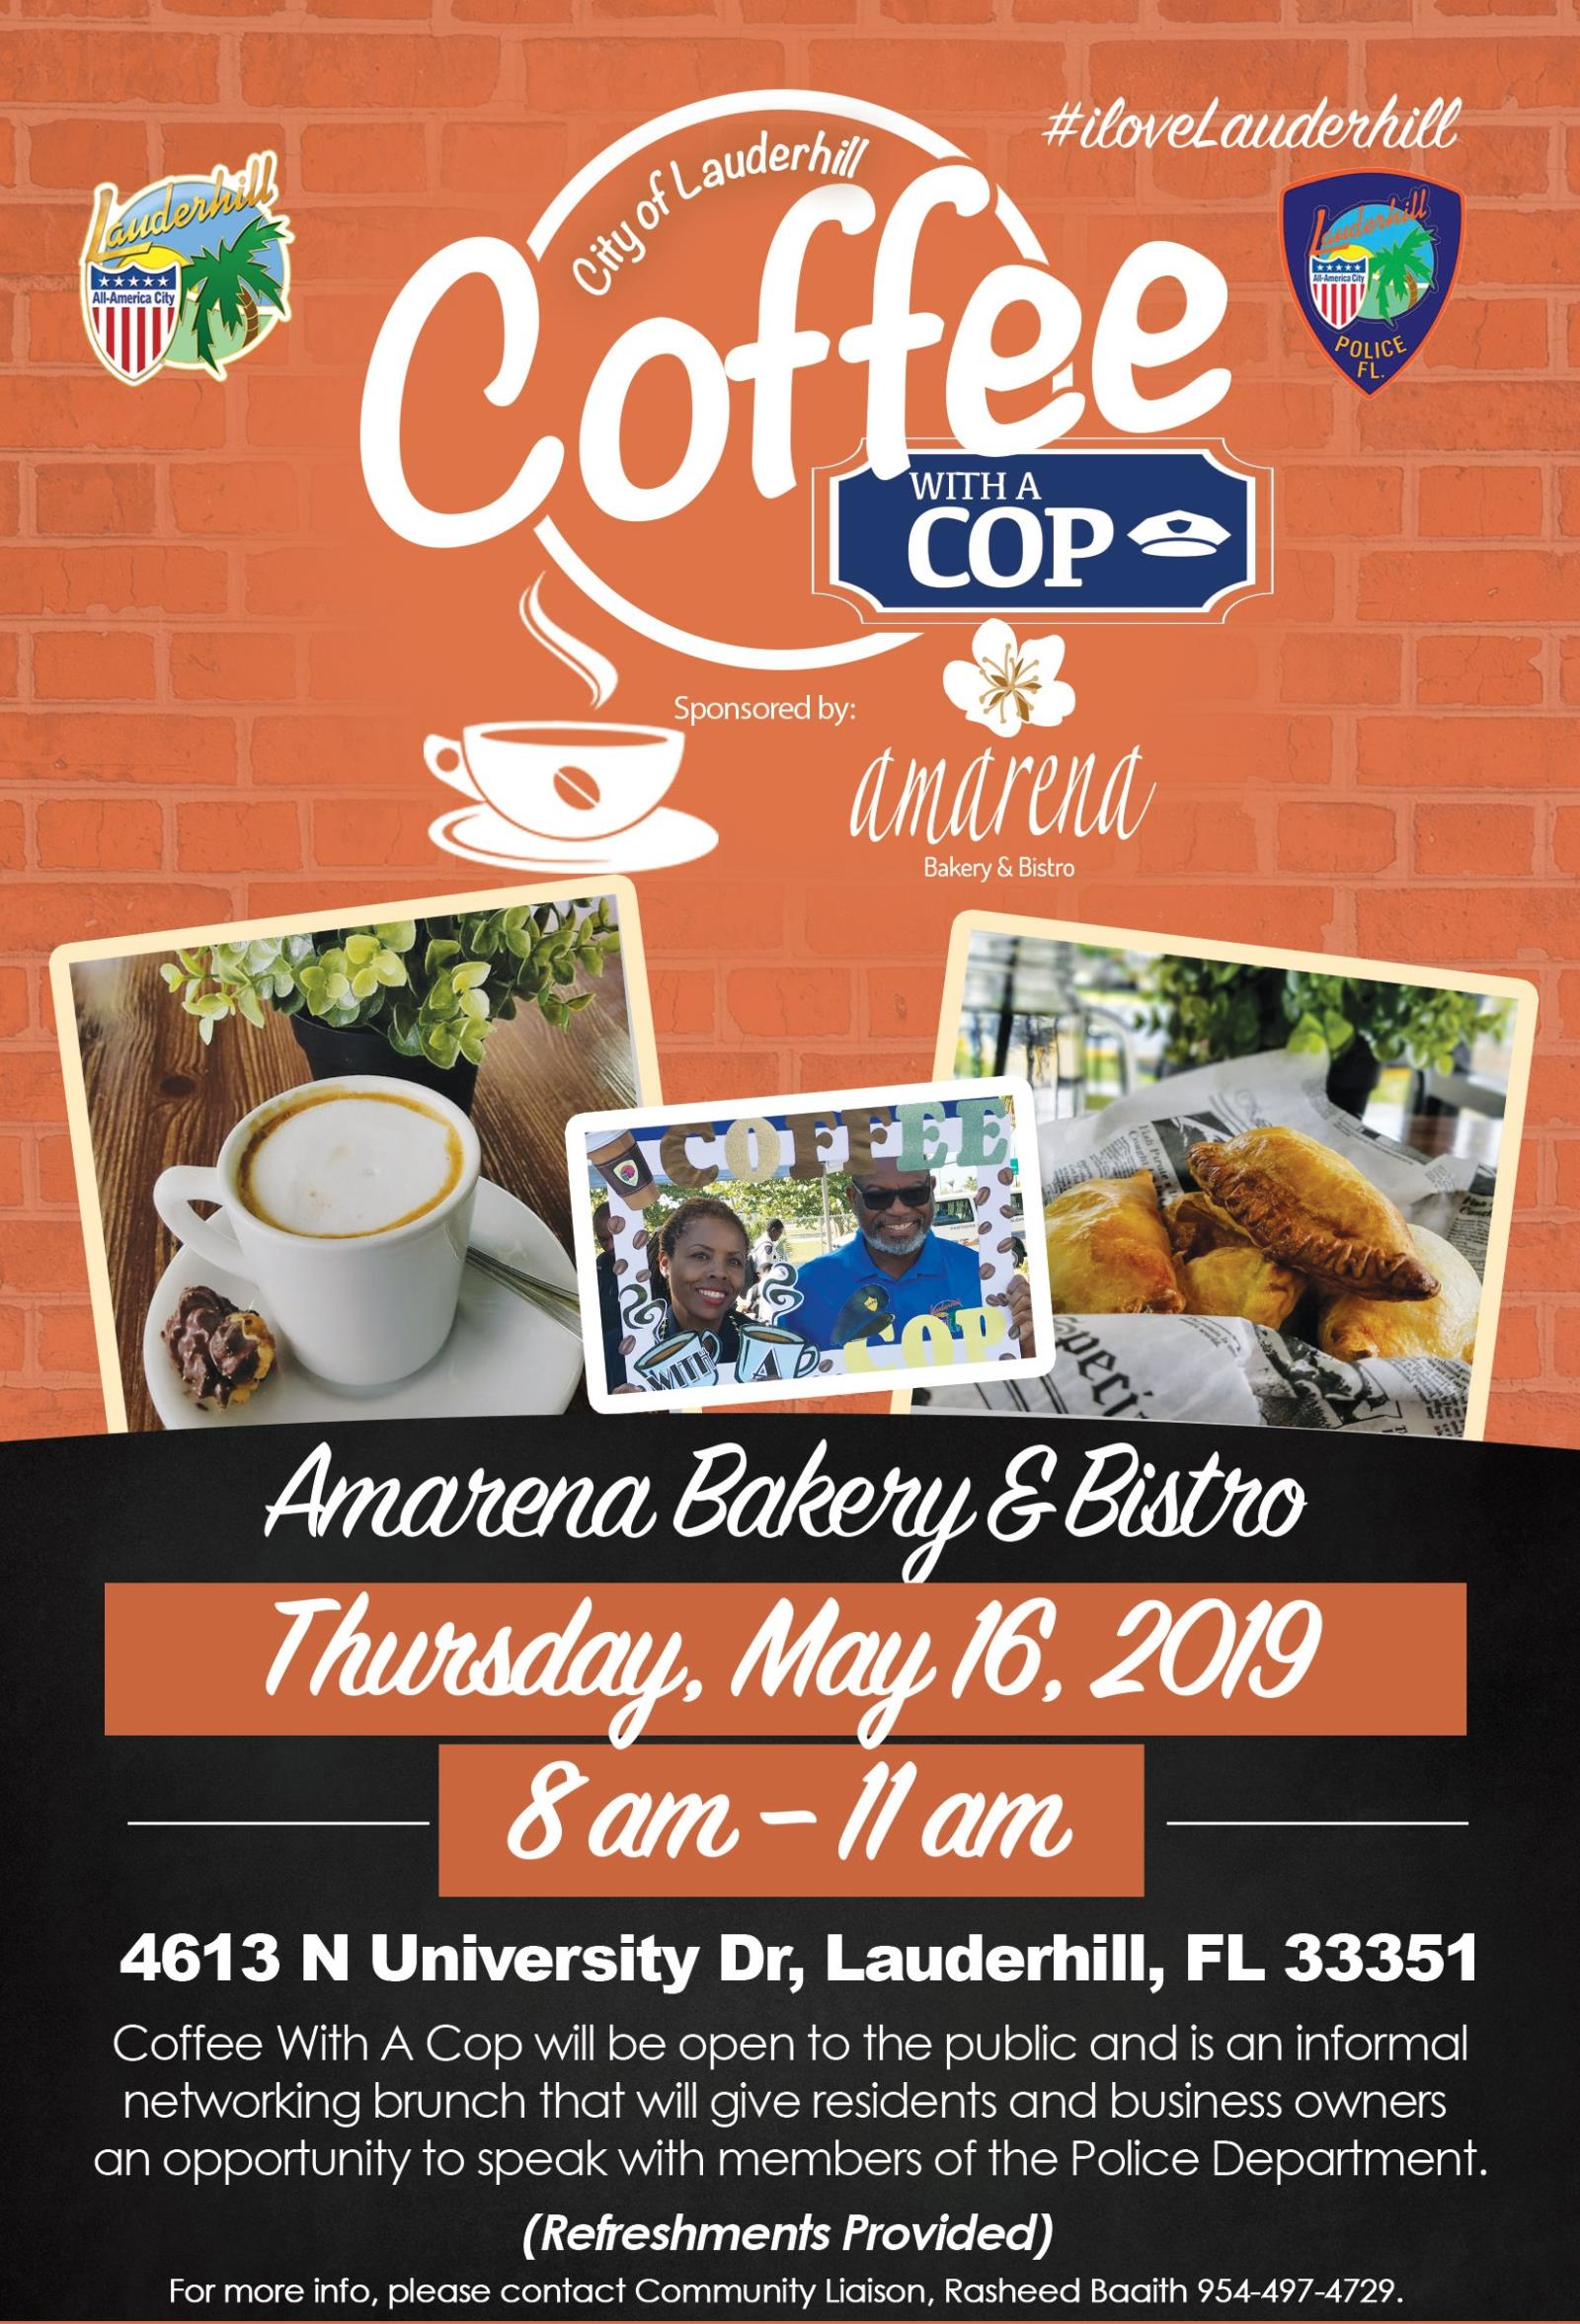 5-16-19 - Coffee With A Cop Event Flyer